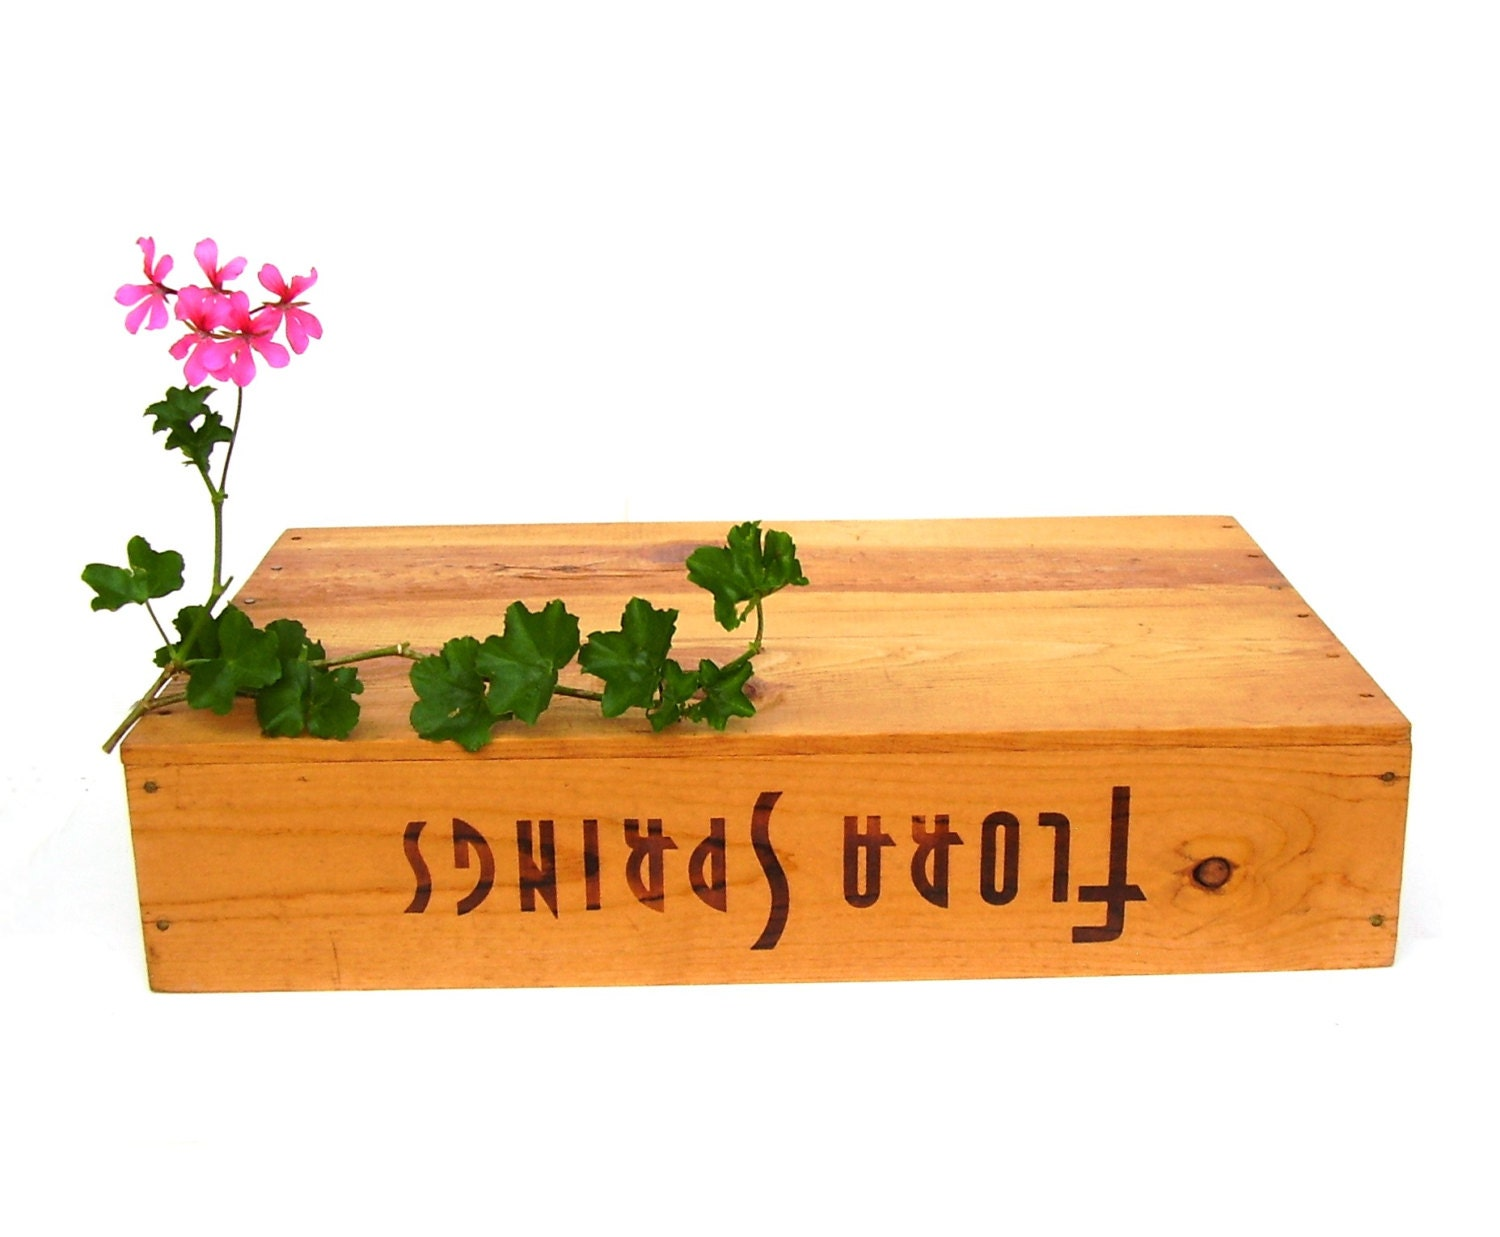 Vintage wine crate wooden storage box rustic farmhouse for Wooden wine box garden